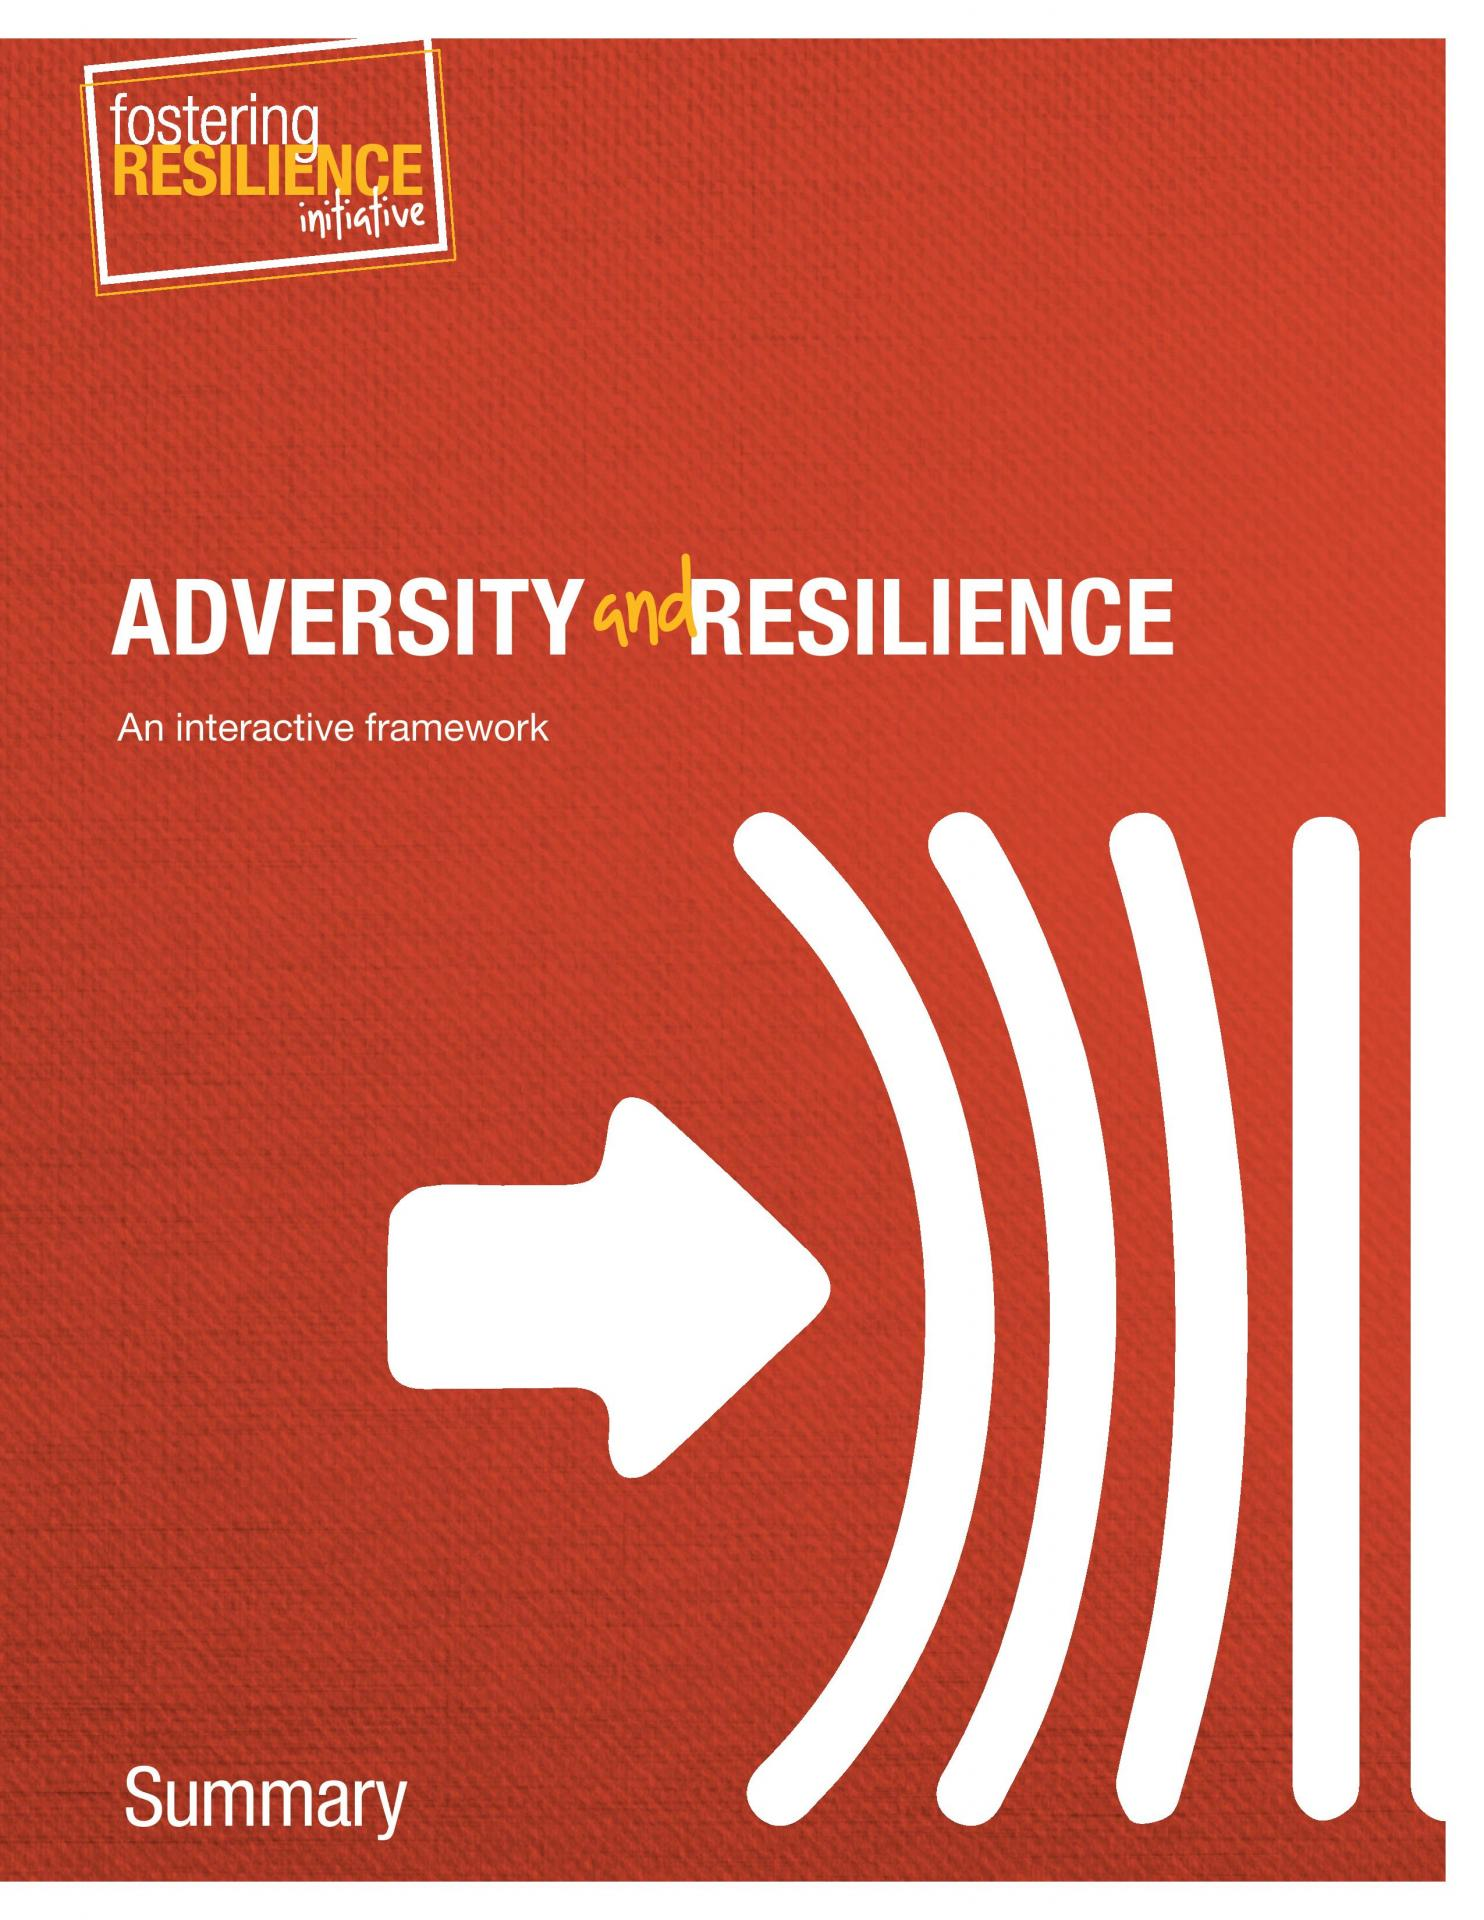 2301_fri_adversity_resilience_final-page-001.jpg